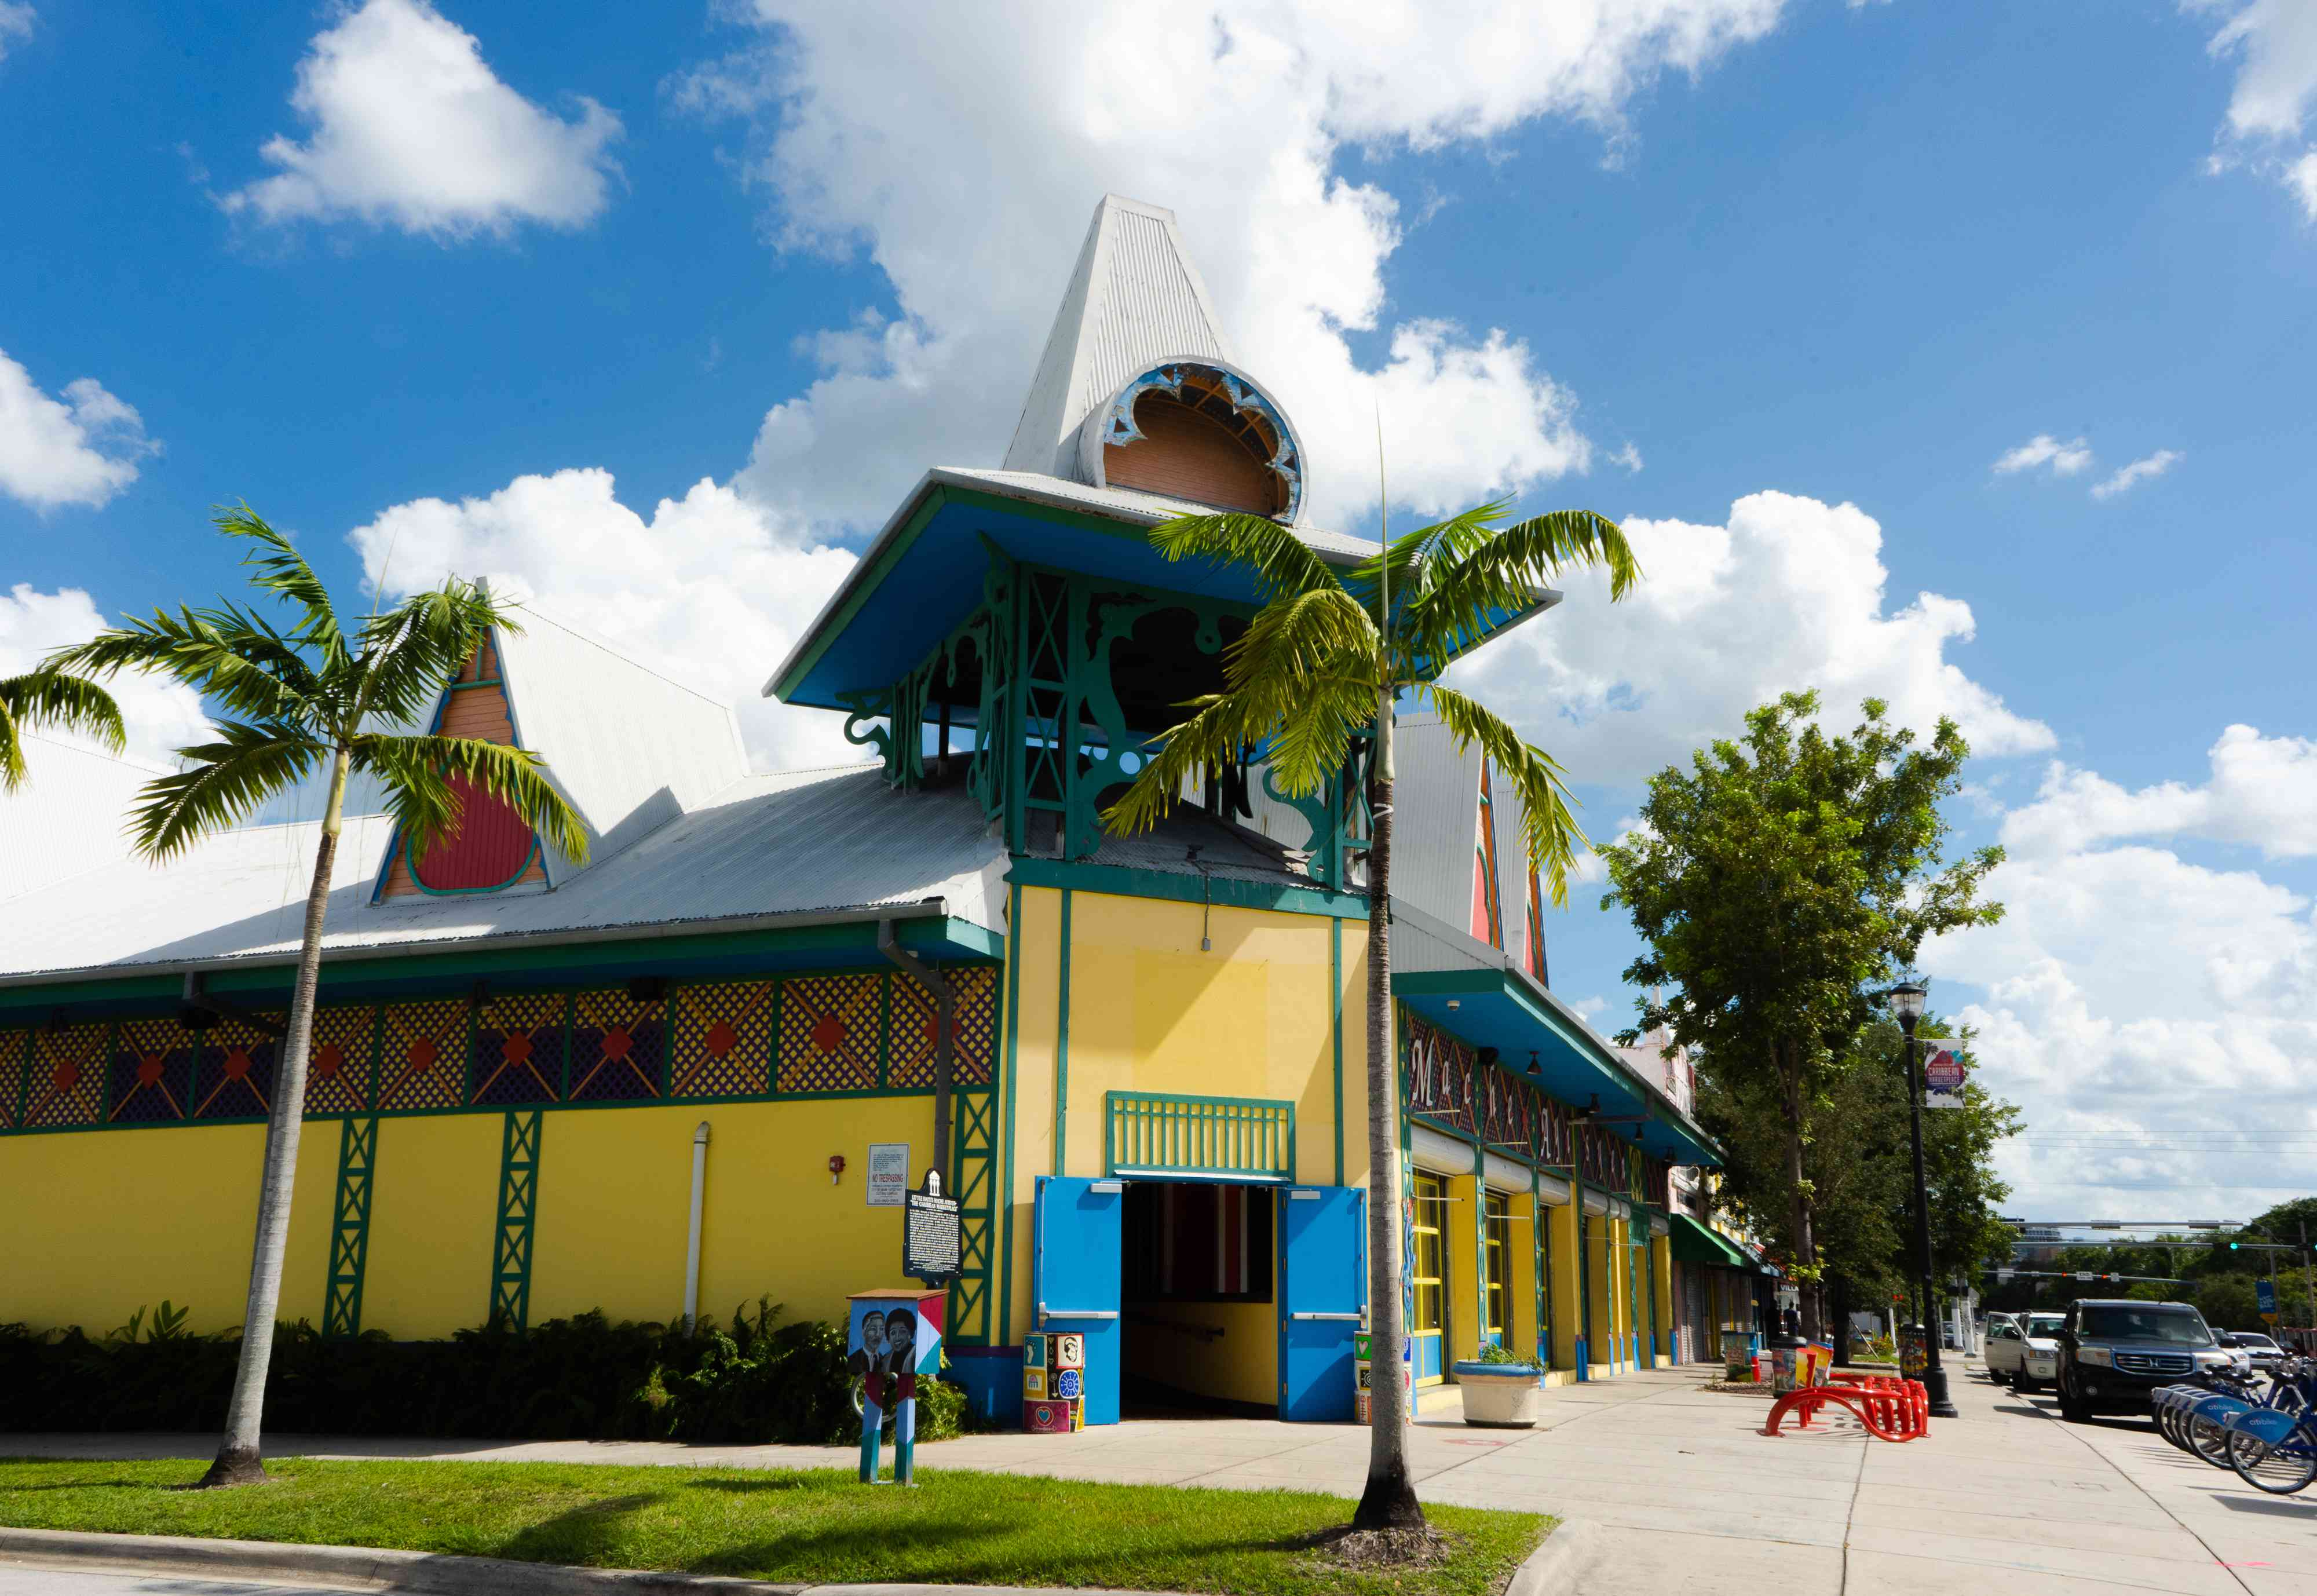 Colorful building in Little Haiti